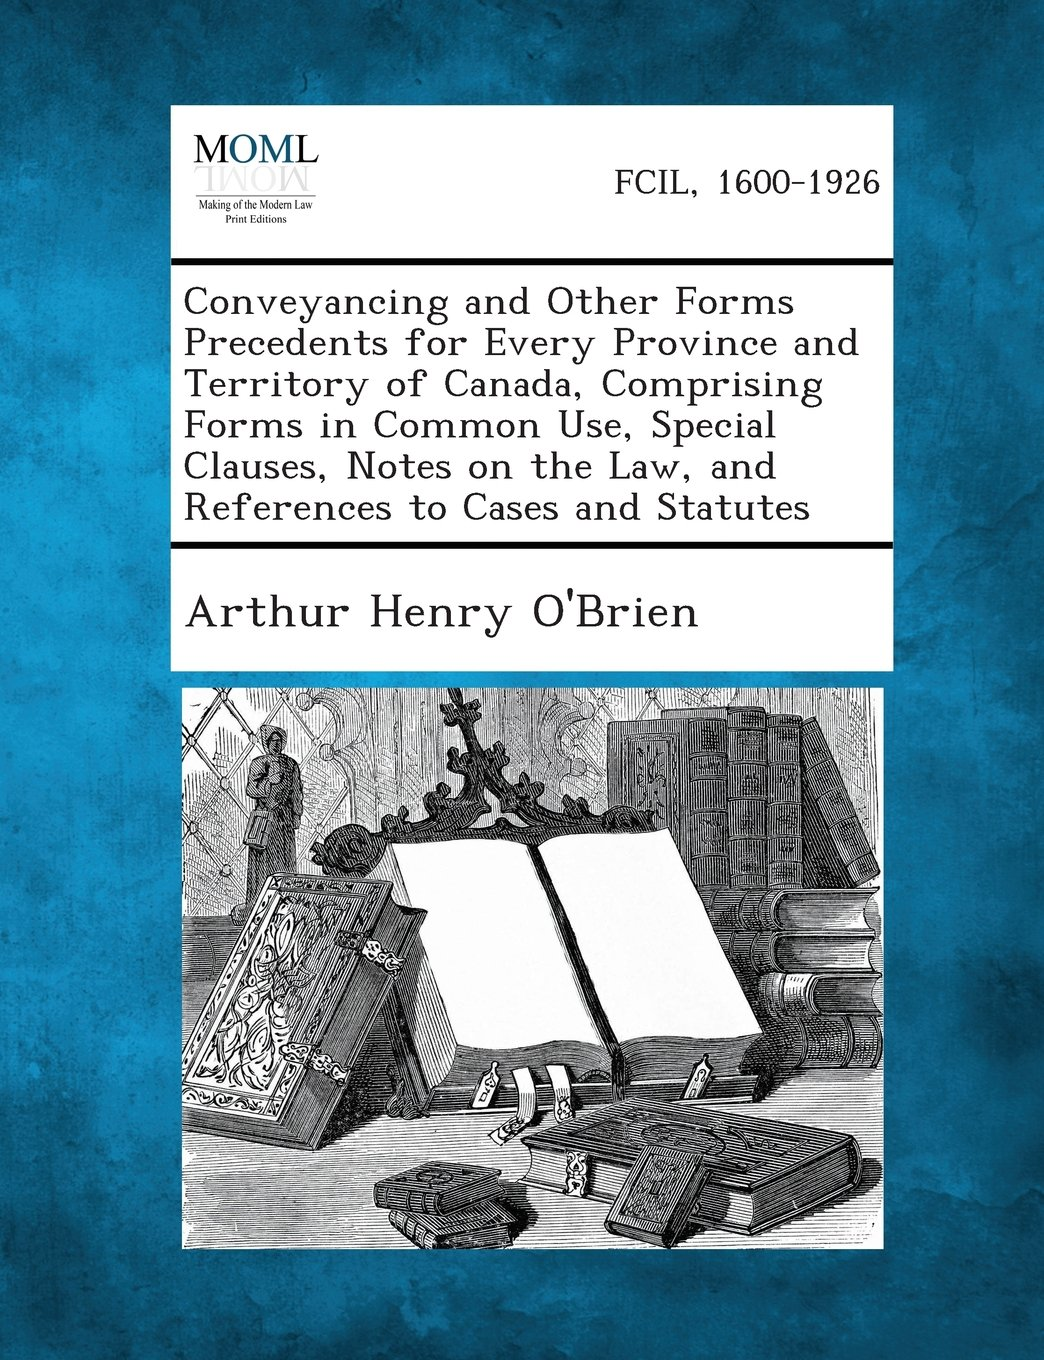 Download Conveyancing and Other Forms Precedents for Every Province and Territory of Canada, Comprising Forms in Common Use, Special Clauses, Notes on the Law, and References to Cases and Statutes ebook